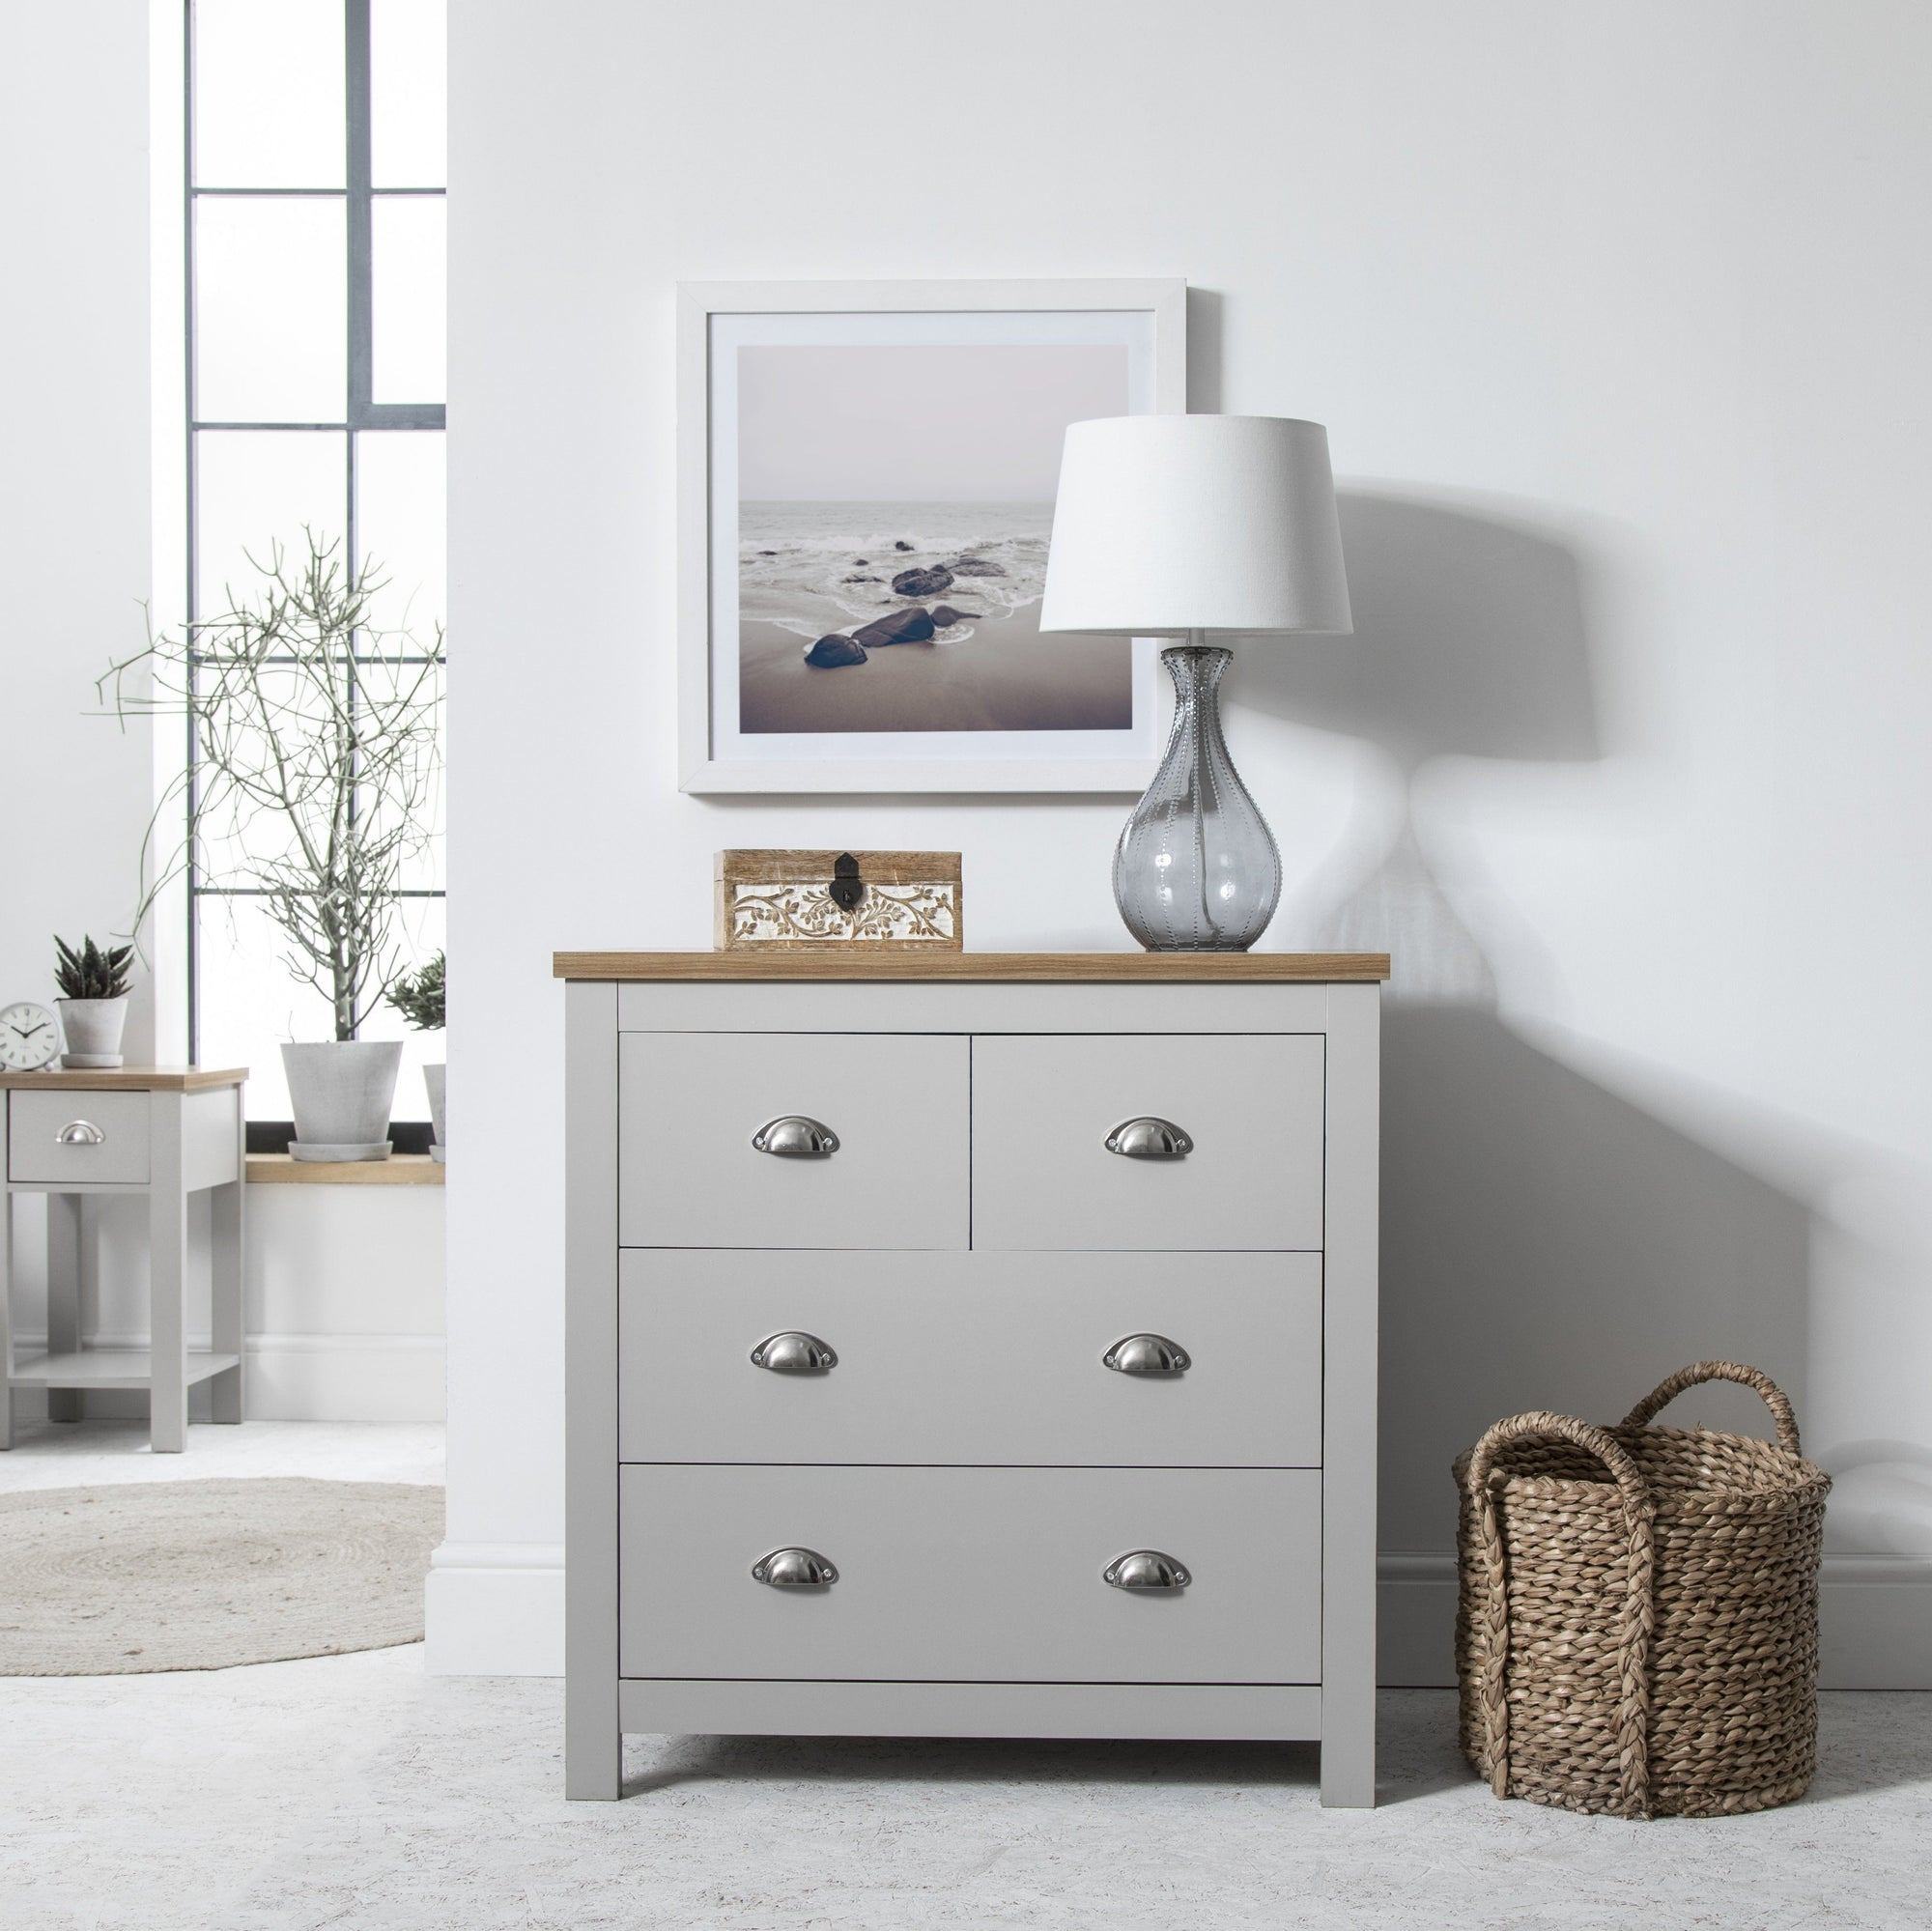 2 Over 2 - Chest of Drawers in Grey